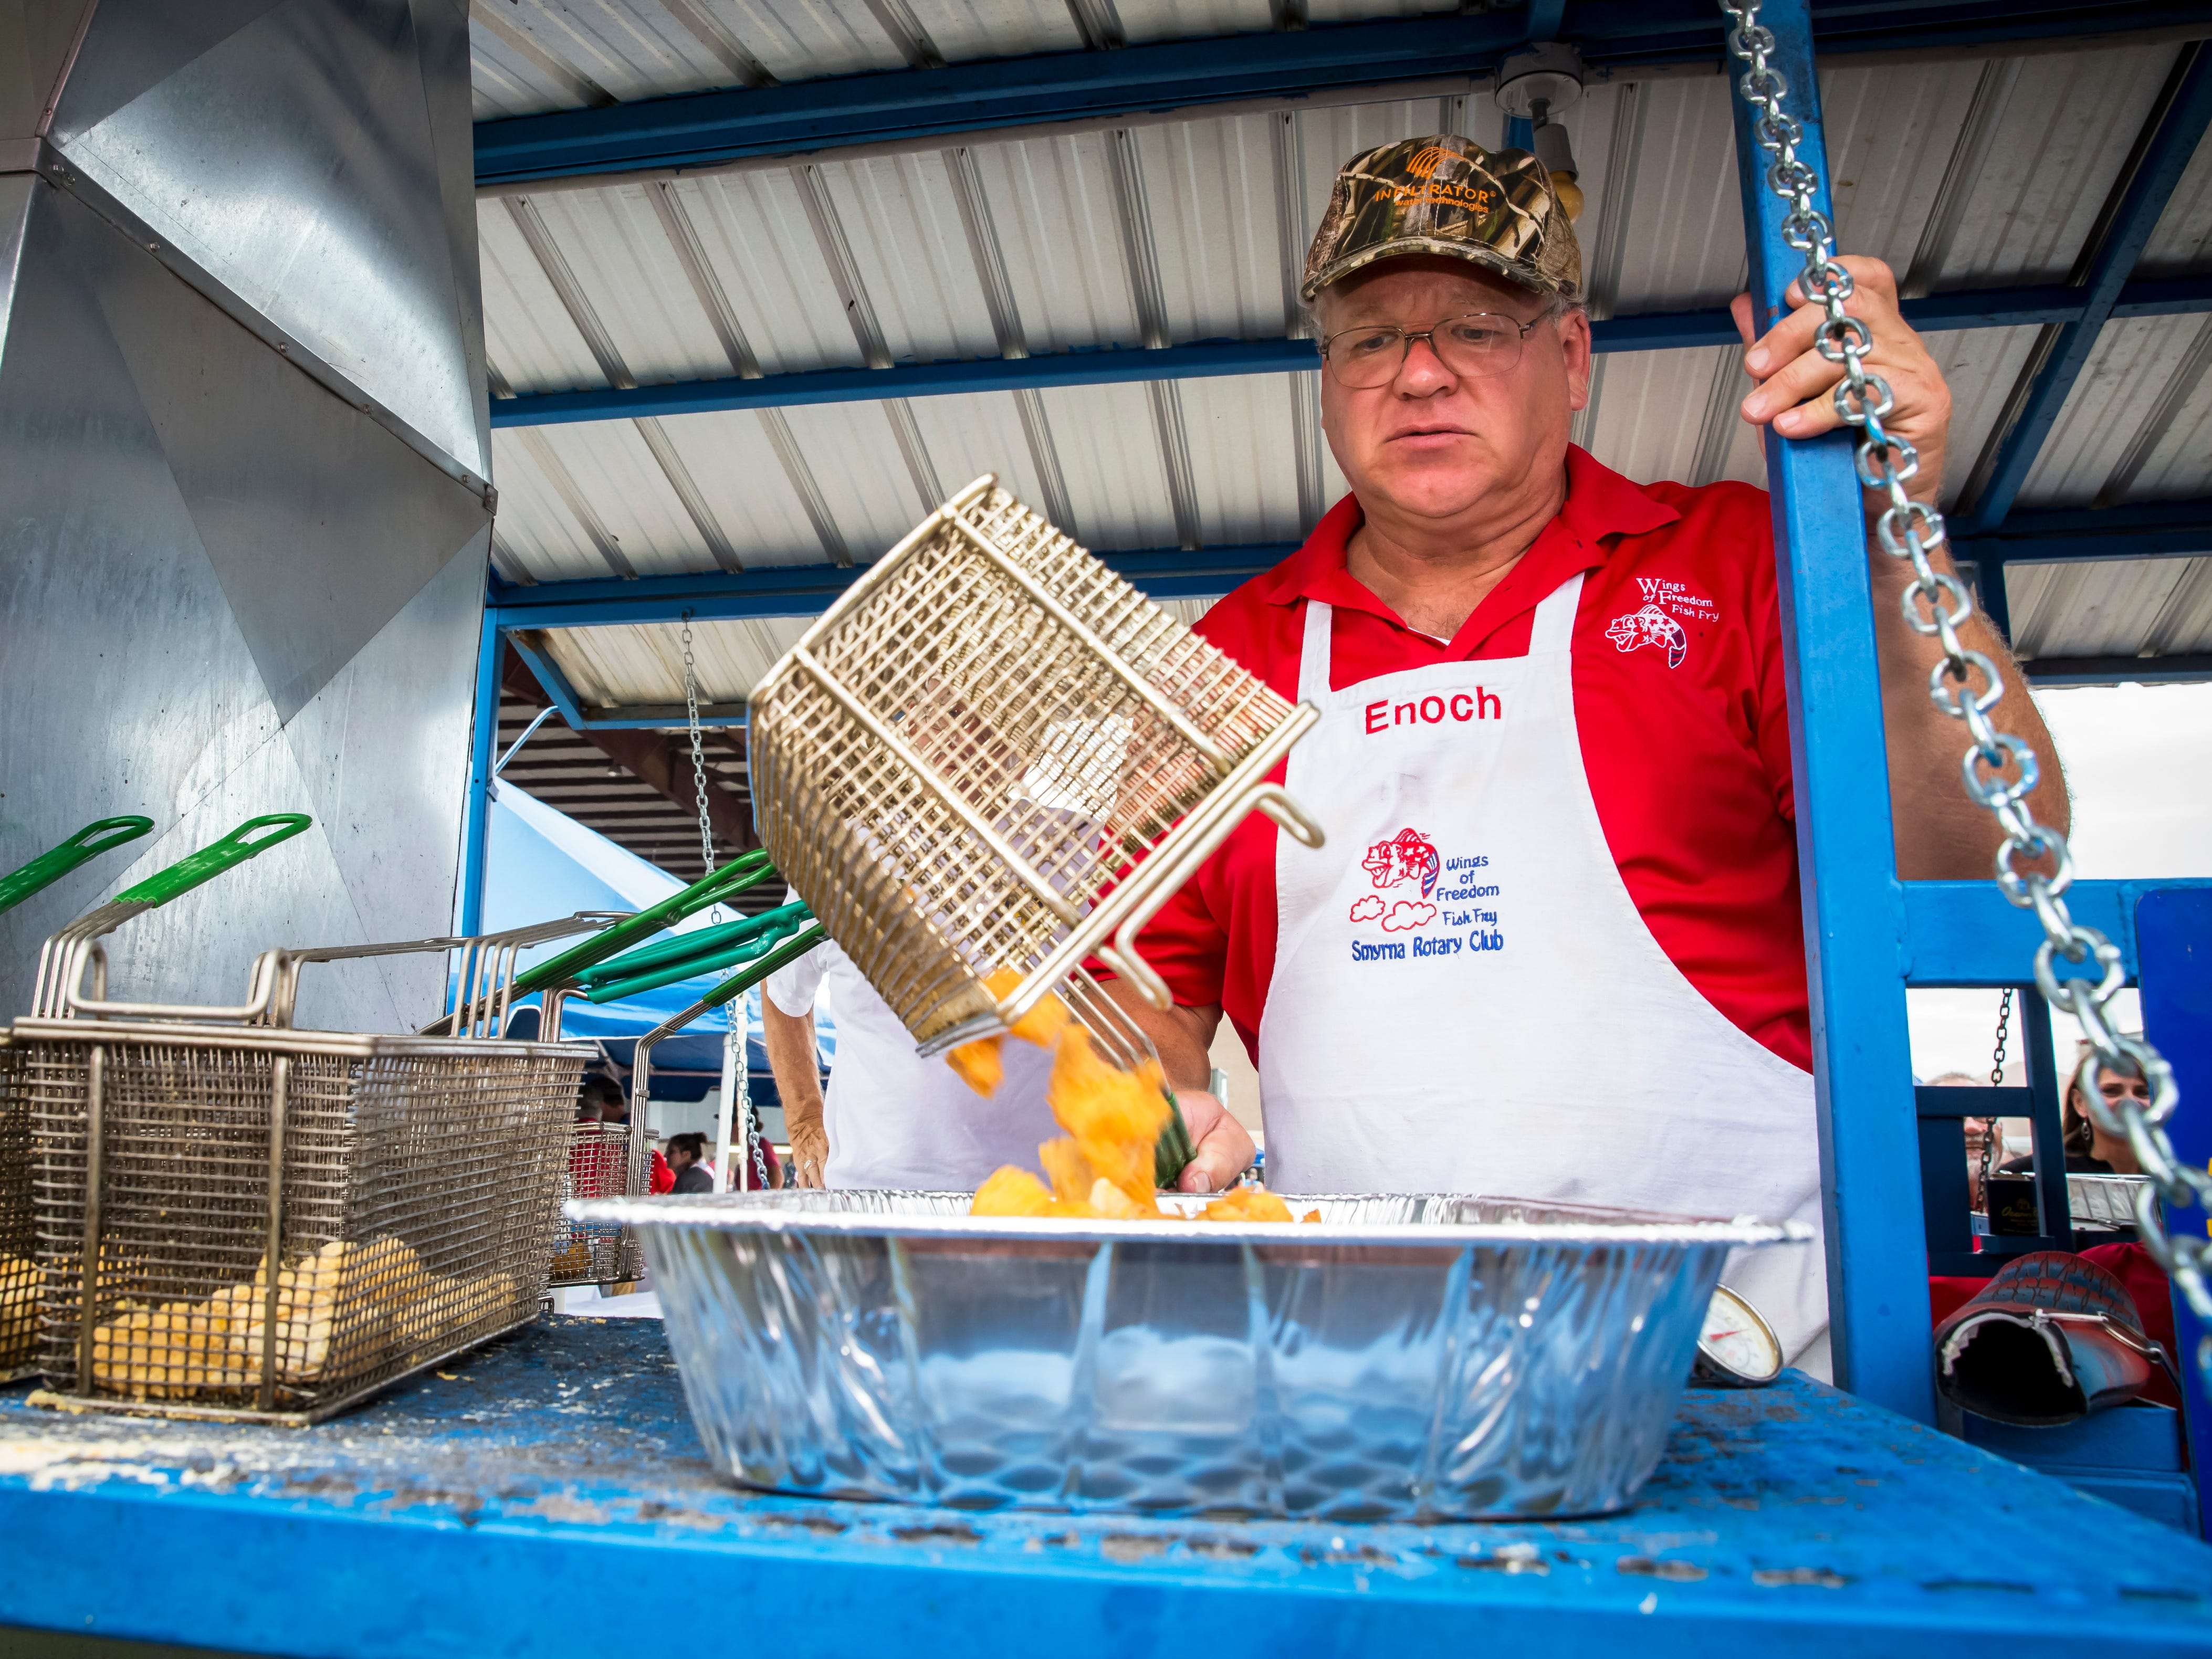 Enoch Jarrell prepares fish at the 2018 Wings of Freedom Fish Fry hosted by Smyrna Rotary Club Saturday, Sept. 8. The event was held at the Corporate Flight Management Hangar at Smyrna Airport.